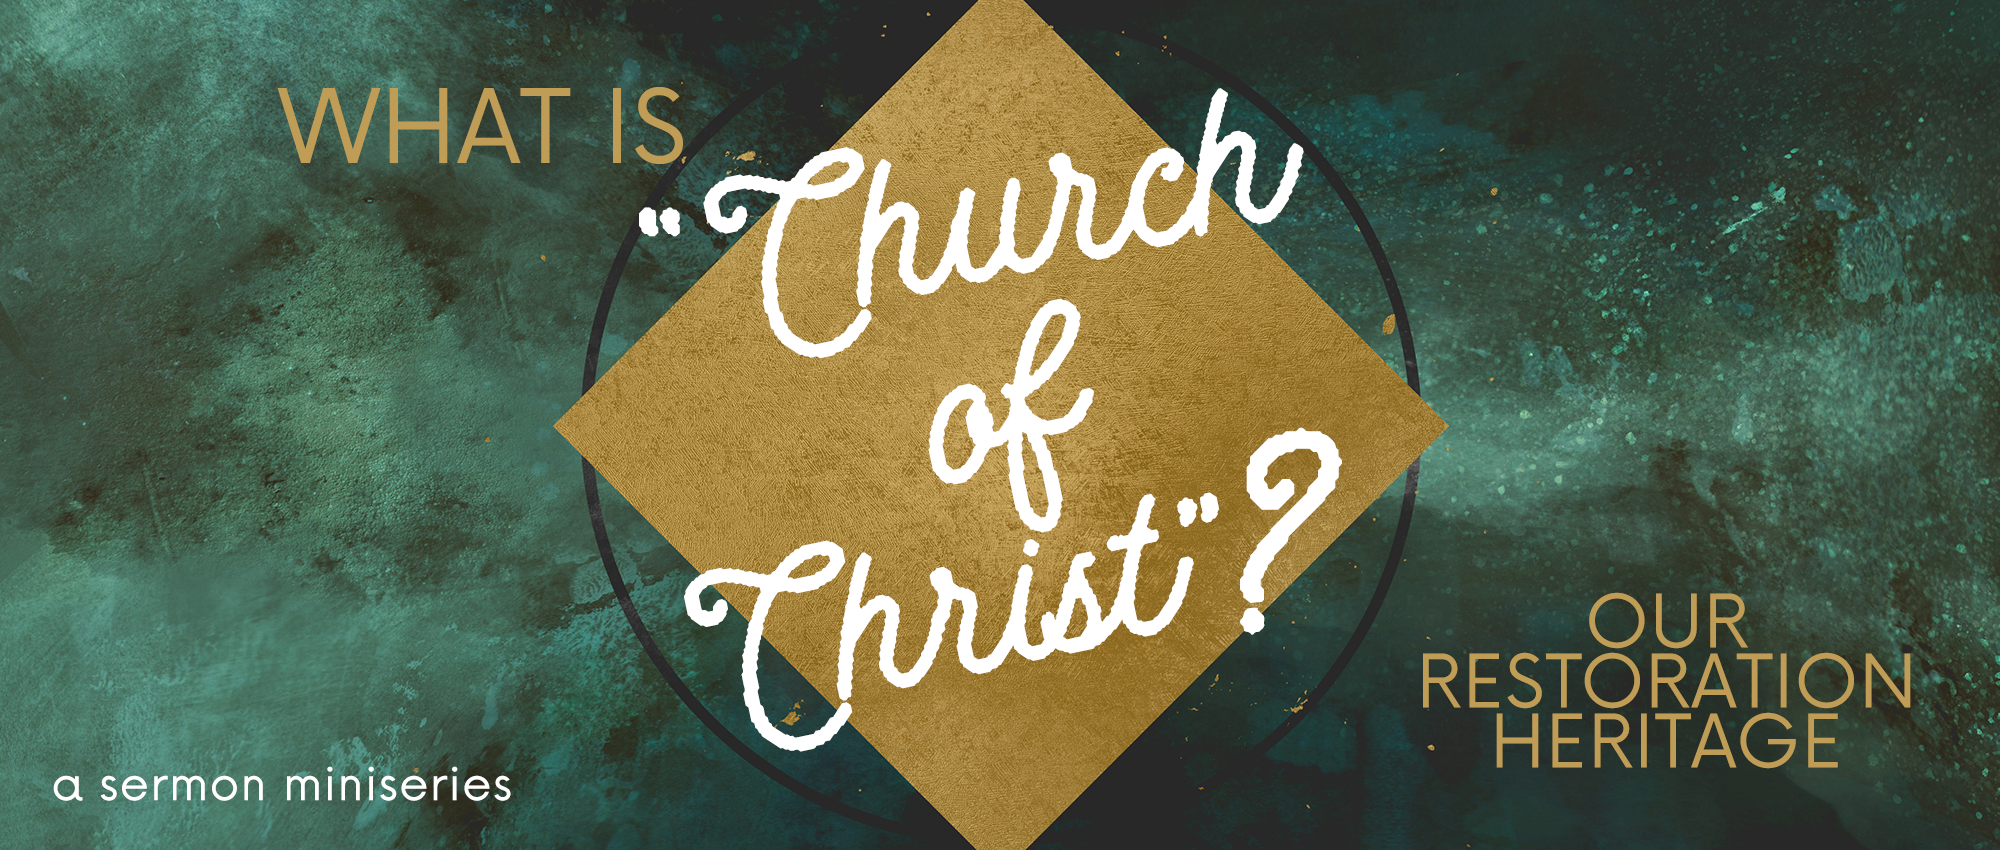 Churhc-of-Christ-Series-web-banner